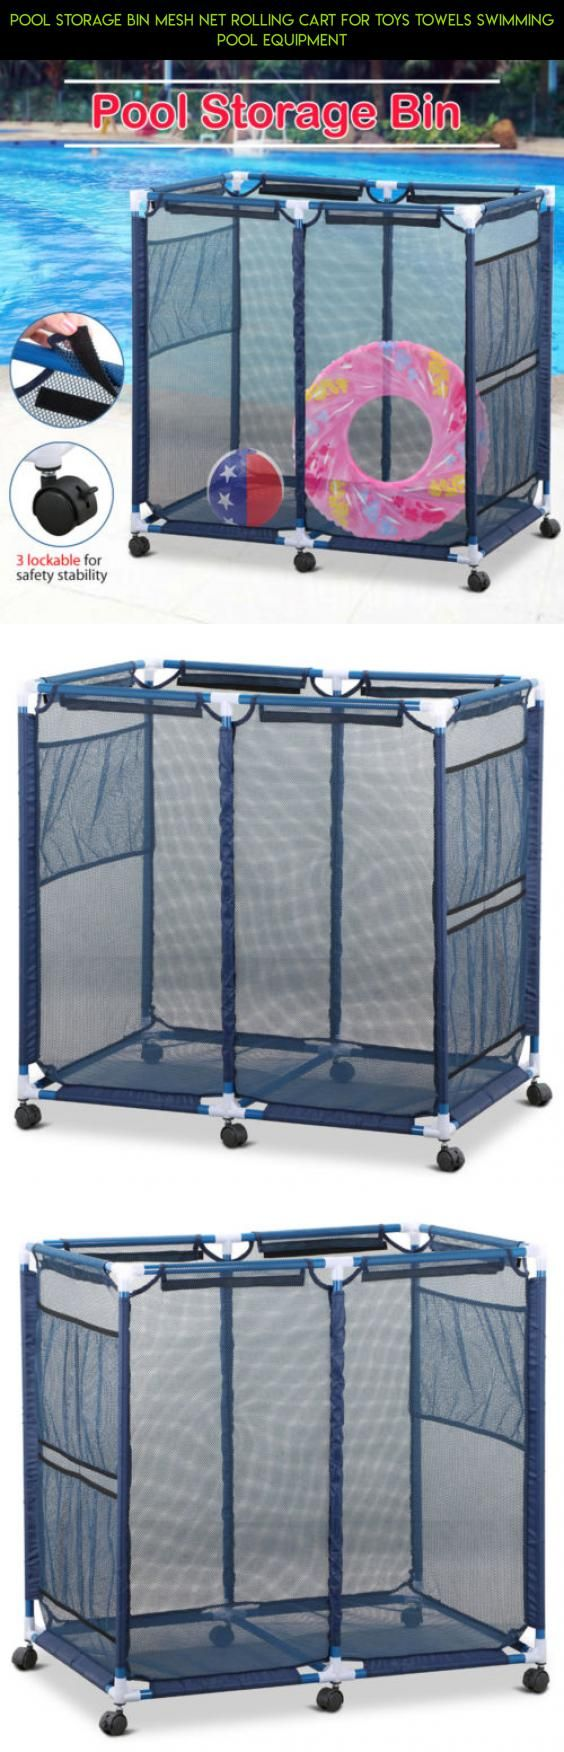 Pool Storage Bin Mesh Net Rolling Cart For Toys Towels Swimming Pool Equipment #toy #shopping #tech #racing #fpv #gadgets #kit #plans #parts #storage #products #camera #drone #technology #net